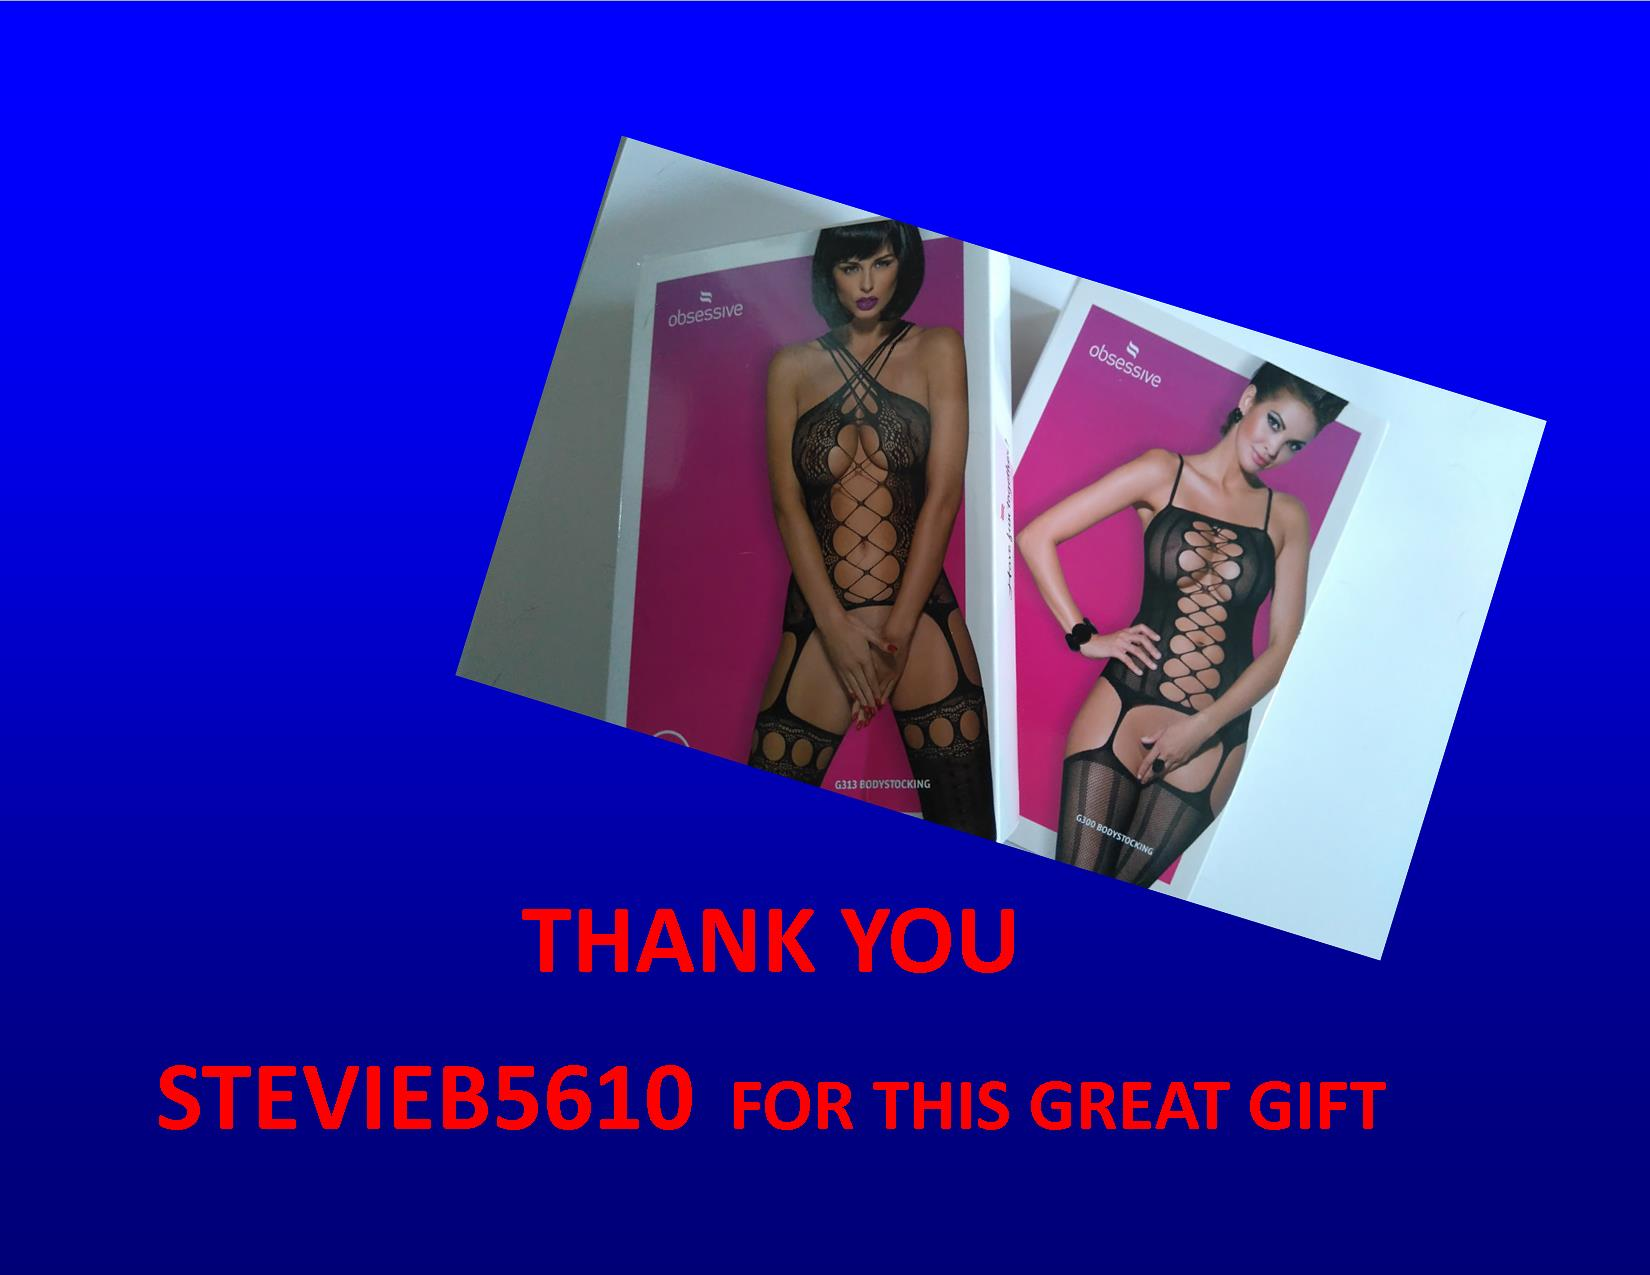 SquirtMoniq KISSES AND HUGS TO STEVIEB5610 custom pic 1